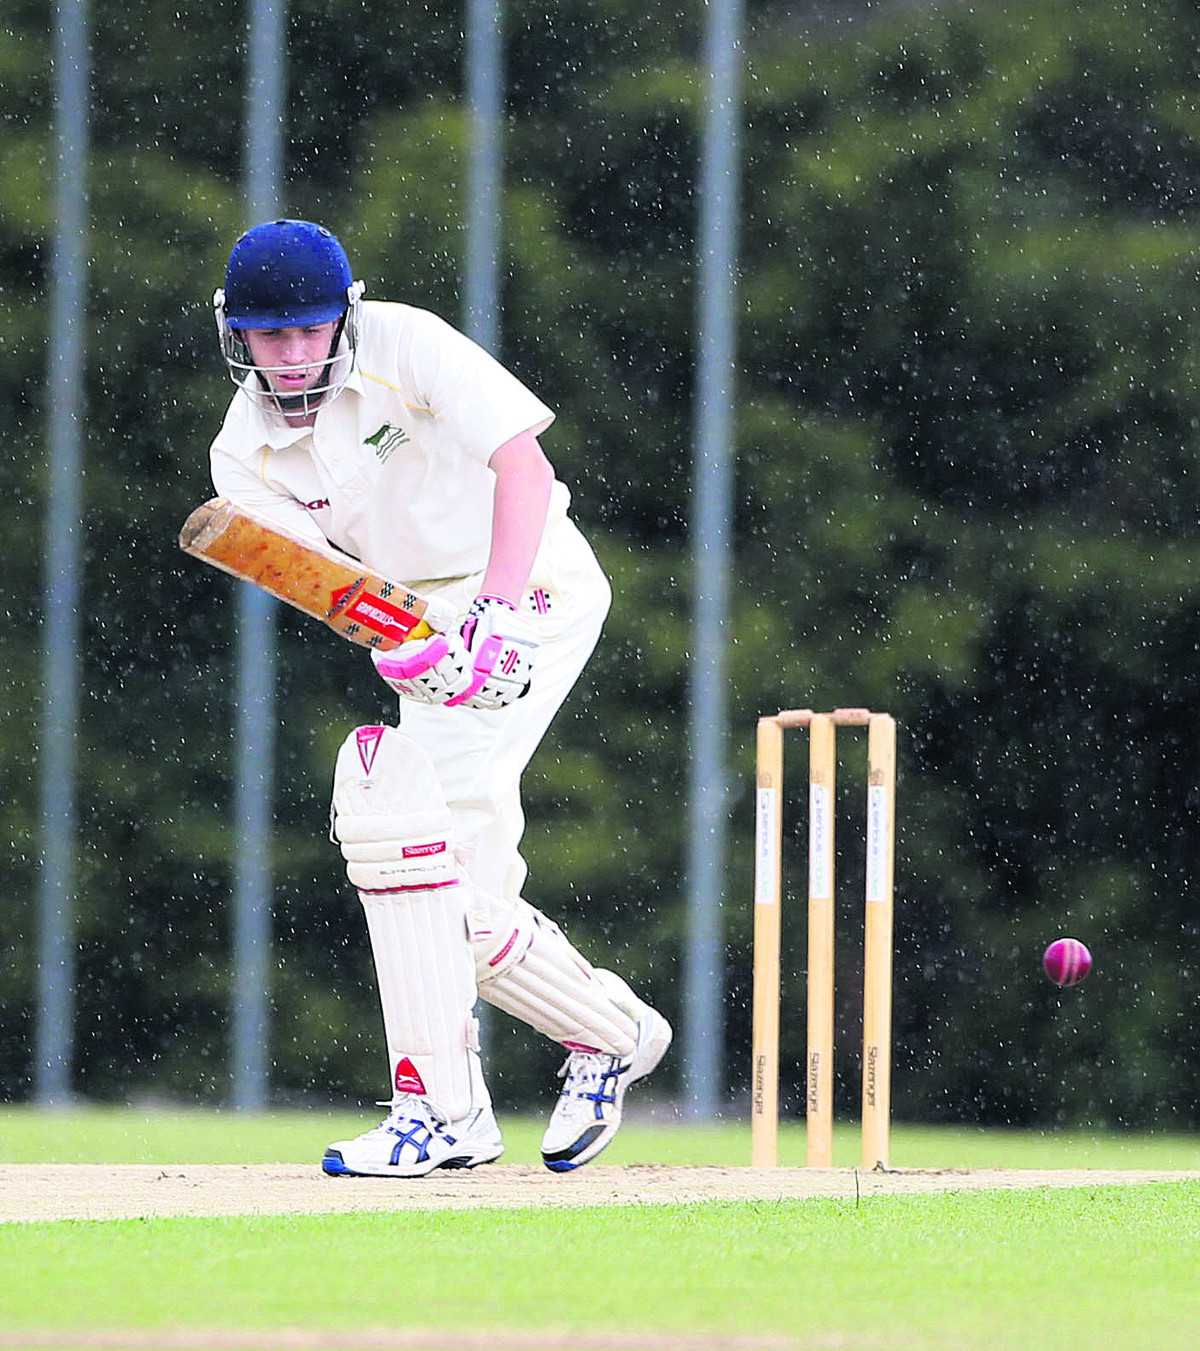 Jeremy Kirby made 92 for Shipton-under-Wychwood 2nd